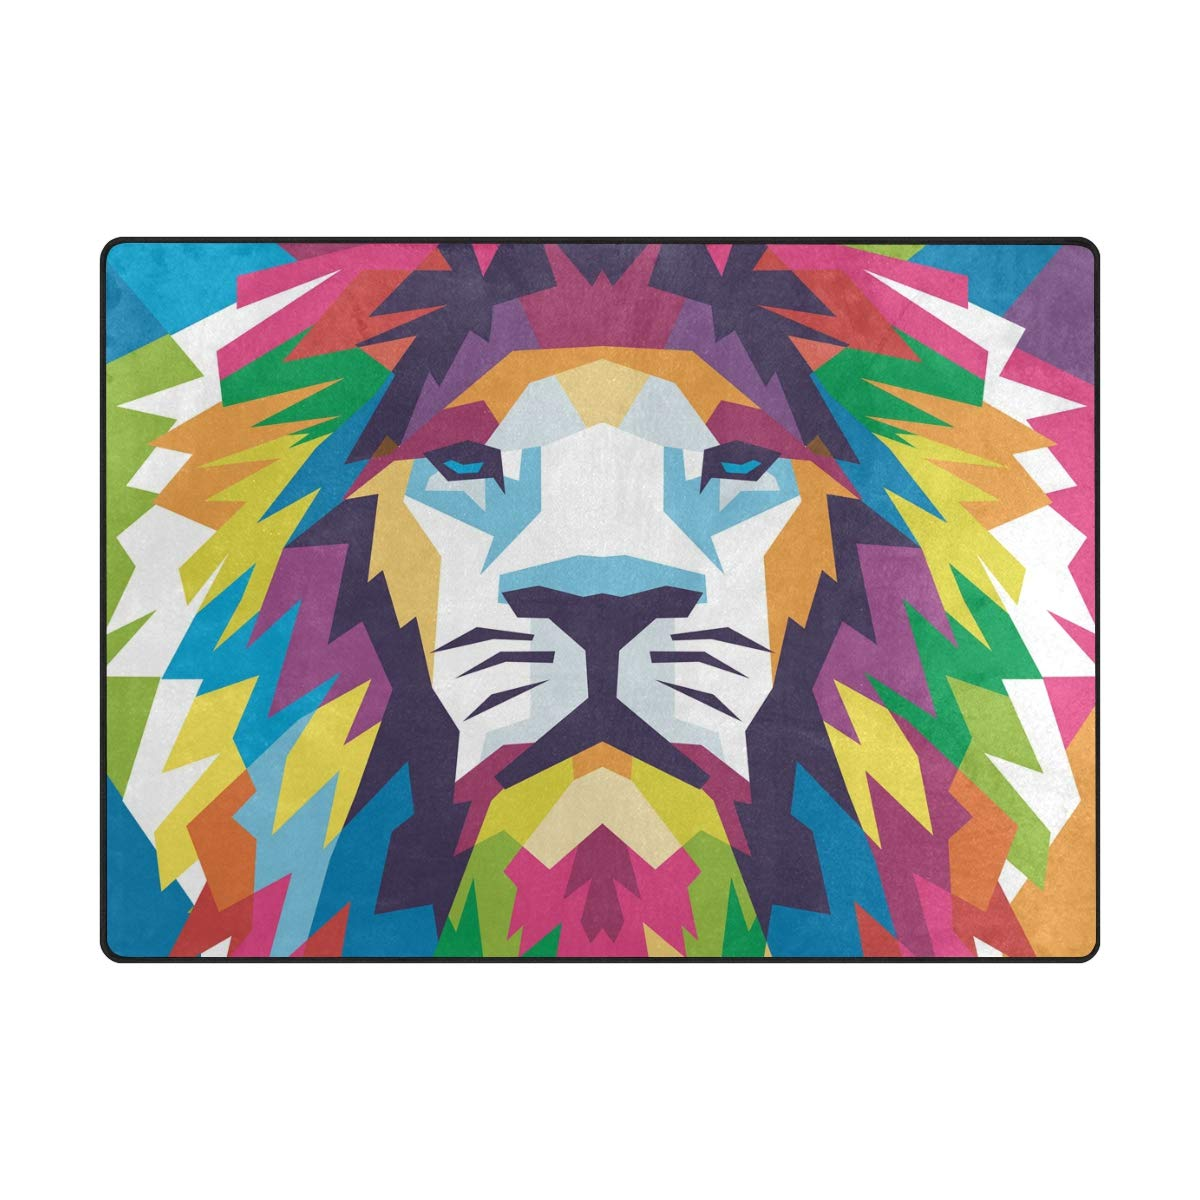 ALAZA Abstract Lion Animal Print Colorful Area Rug Soft Non Slip Floor Mat Washable Carpet for Bedroom Living Room One Piece 4x5 Feet